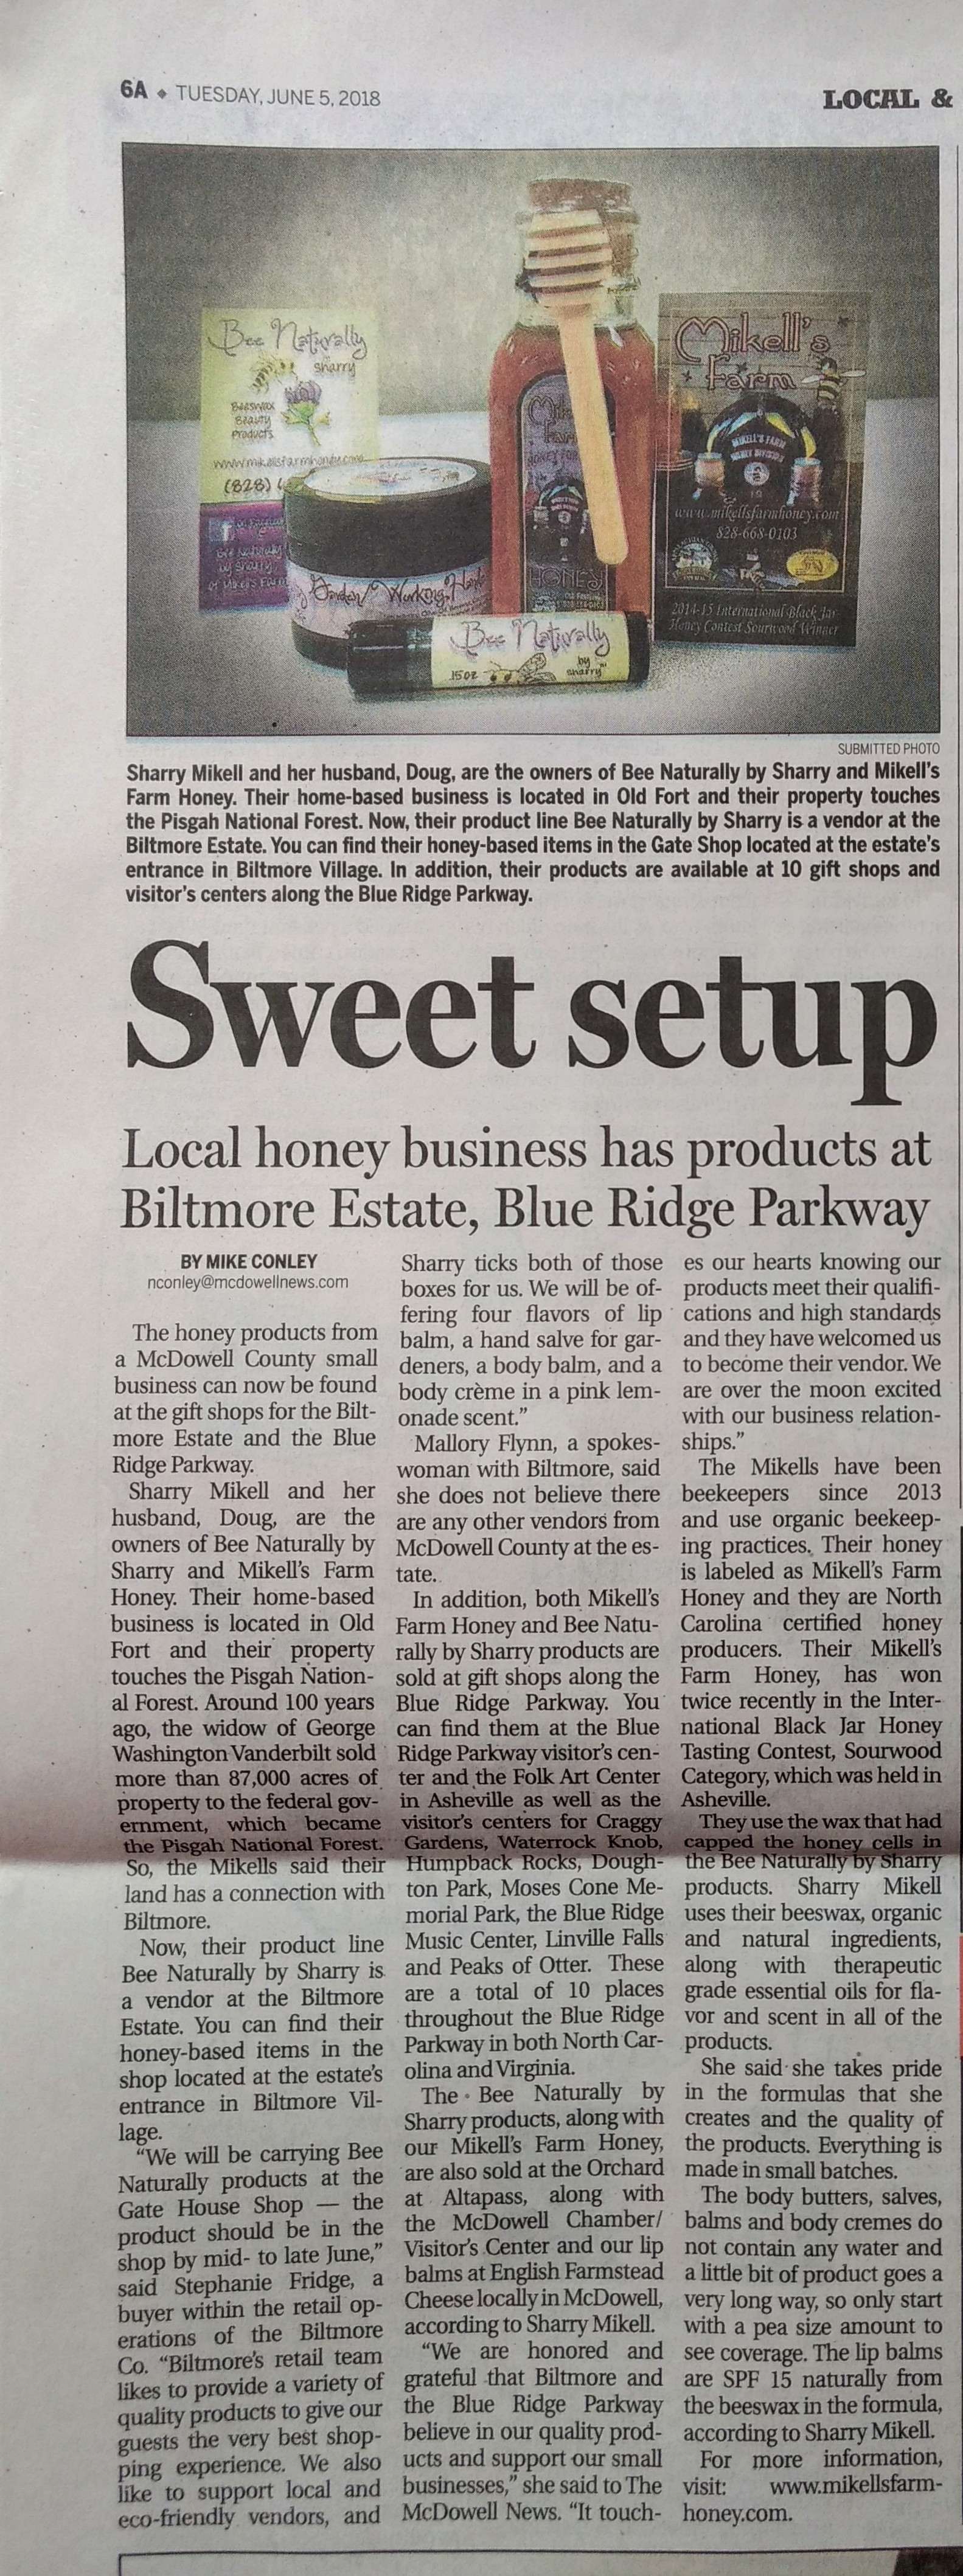 Pic of 6.5.18 McDowell Newspaper article on Mikell's Farm Honey and Bee Naturally by Sharry